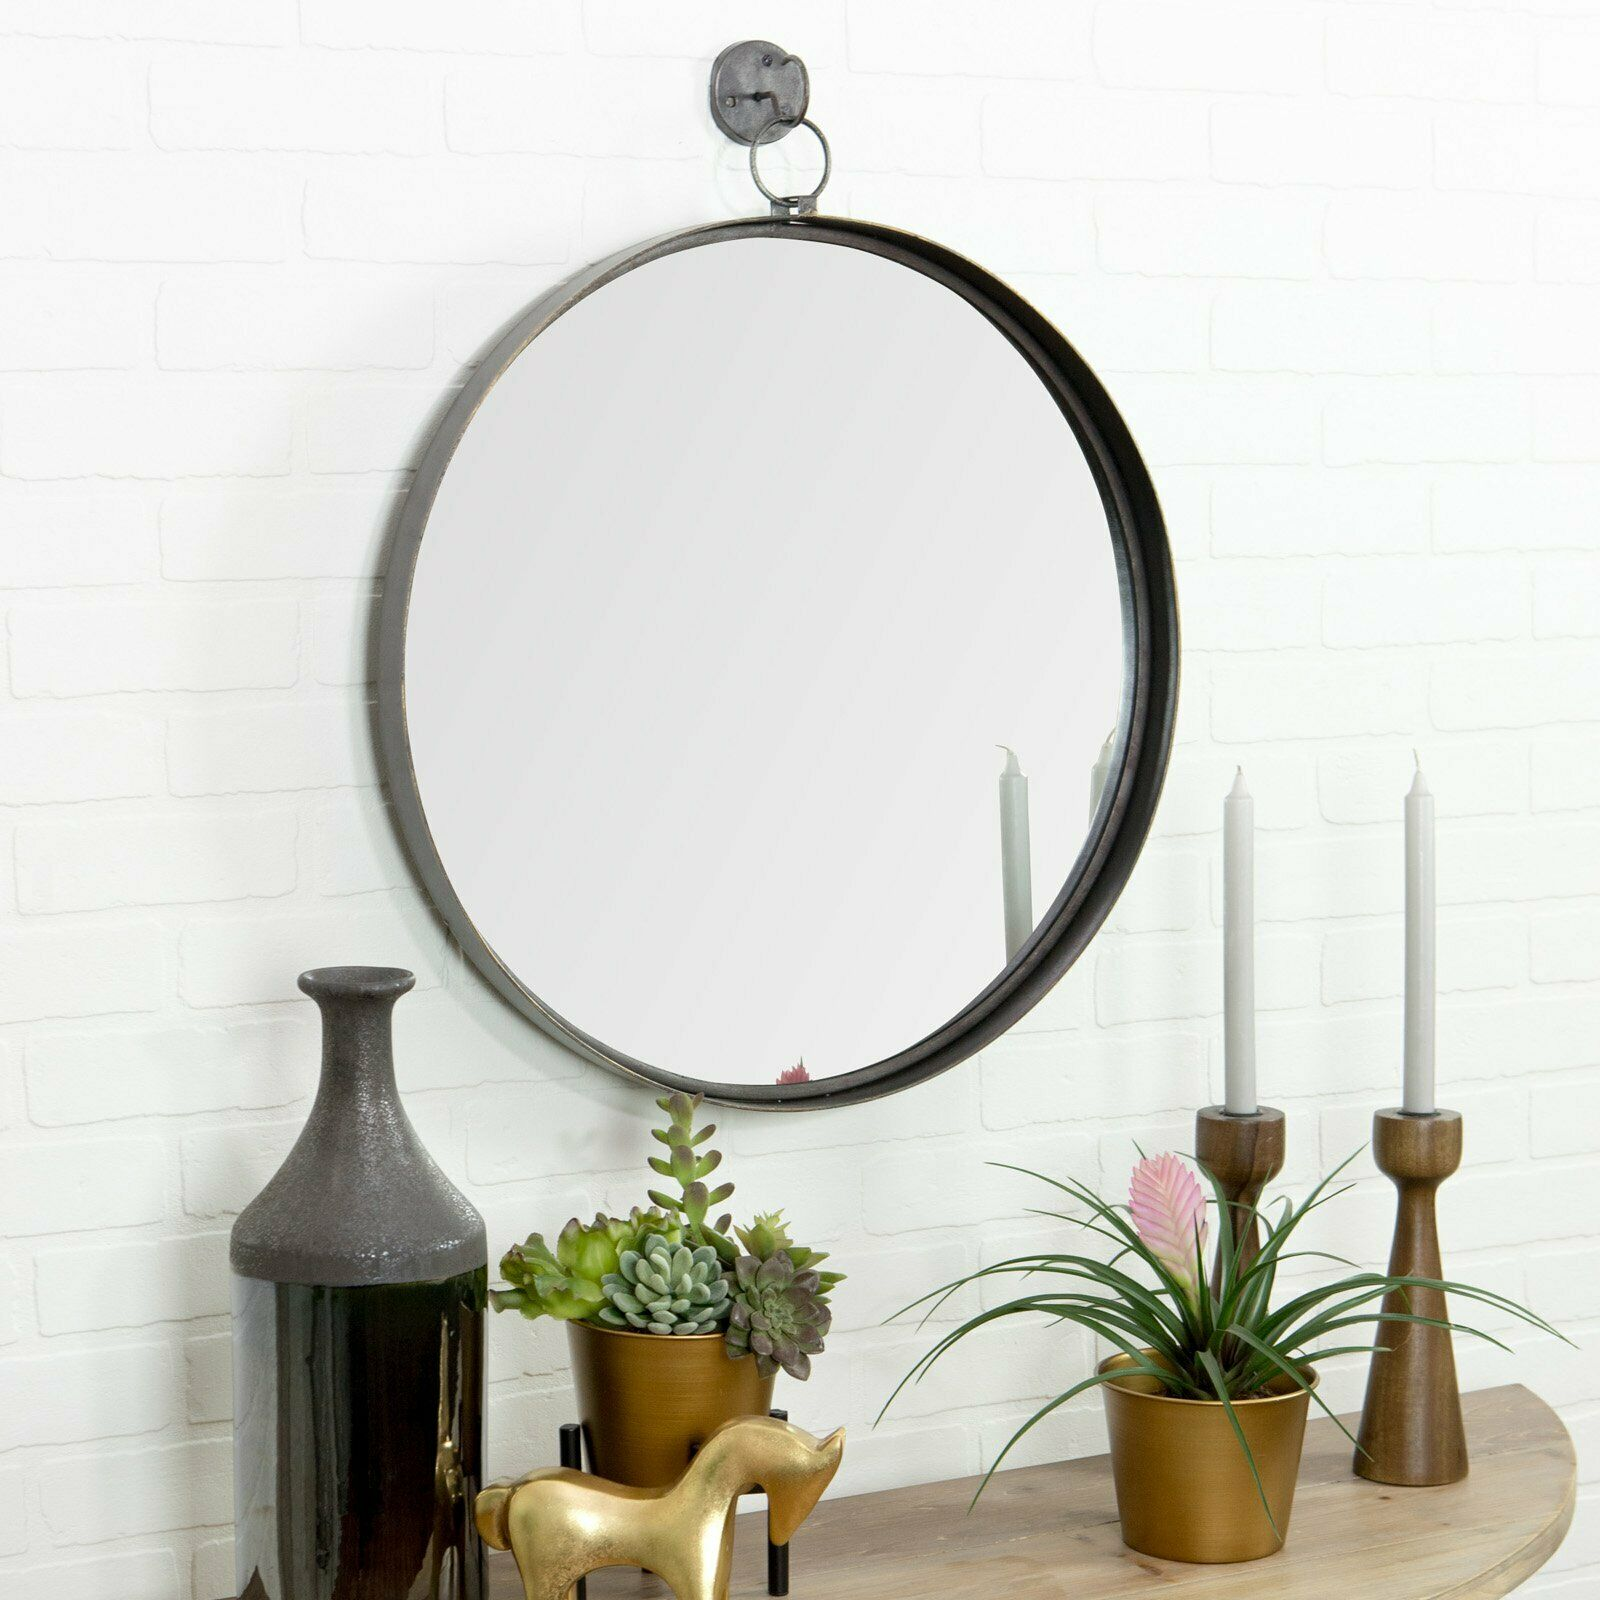 Decorative Mirror Mirrors Wall Decor Decorations Vanity Large Living Room Round For Sale Online Ebay